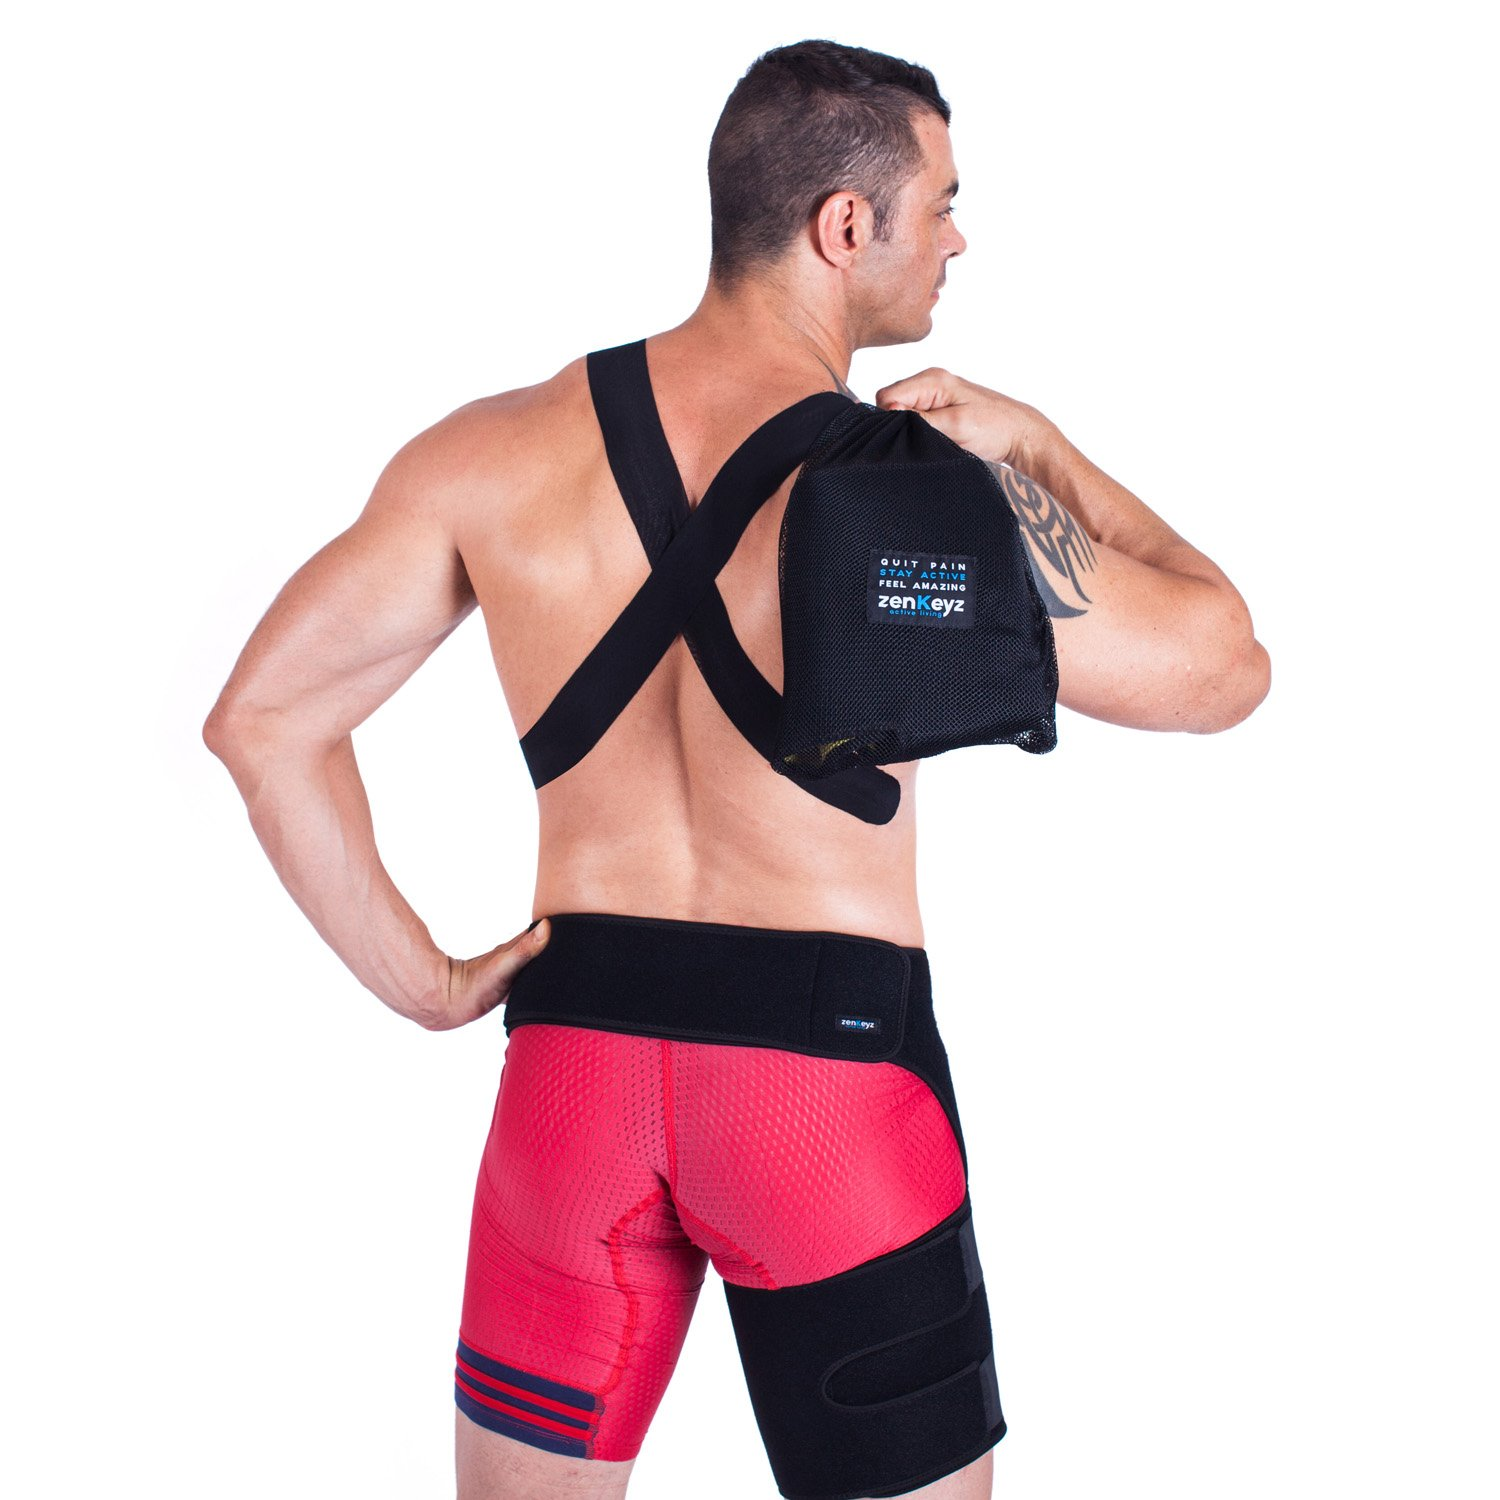 aff2883346 Our Guide to the Best Hip Brace in 2019 - BestHealthGear